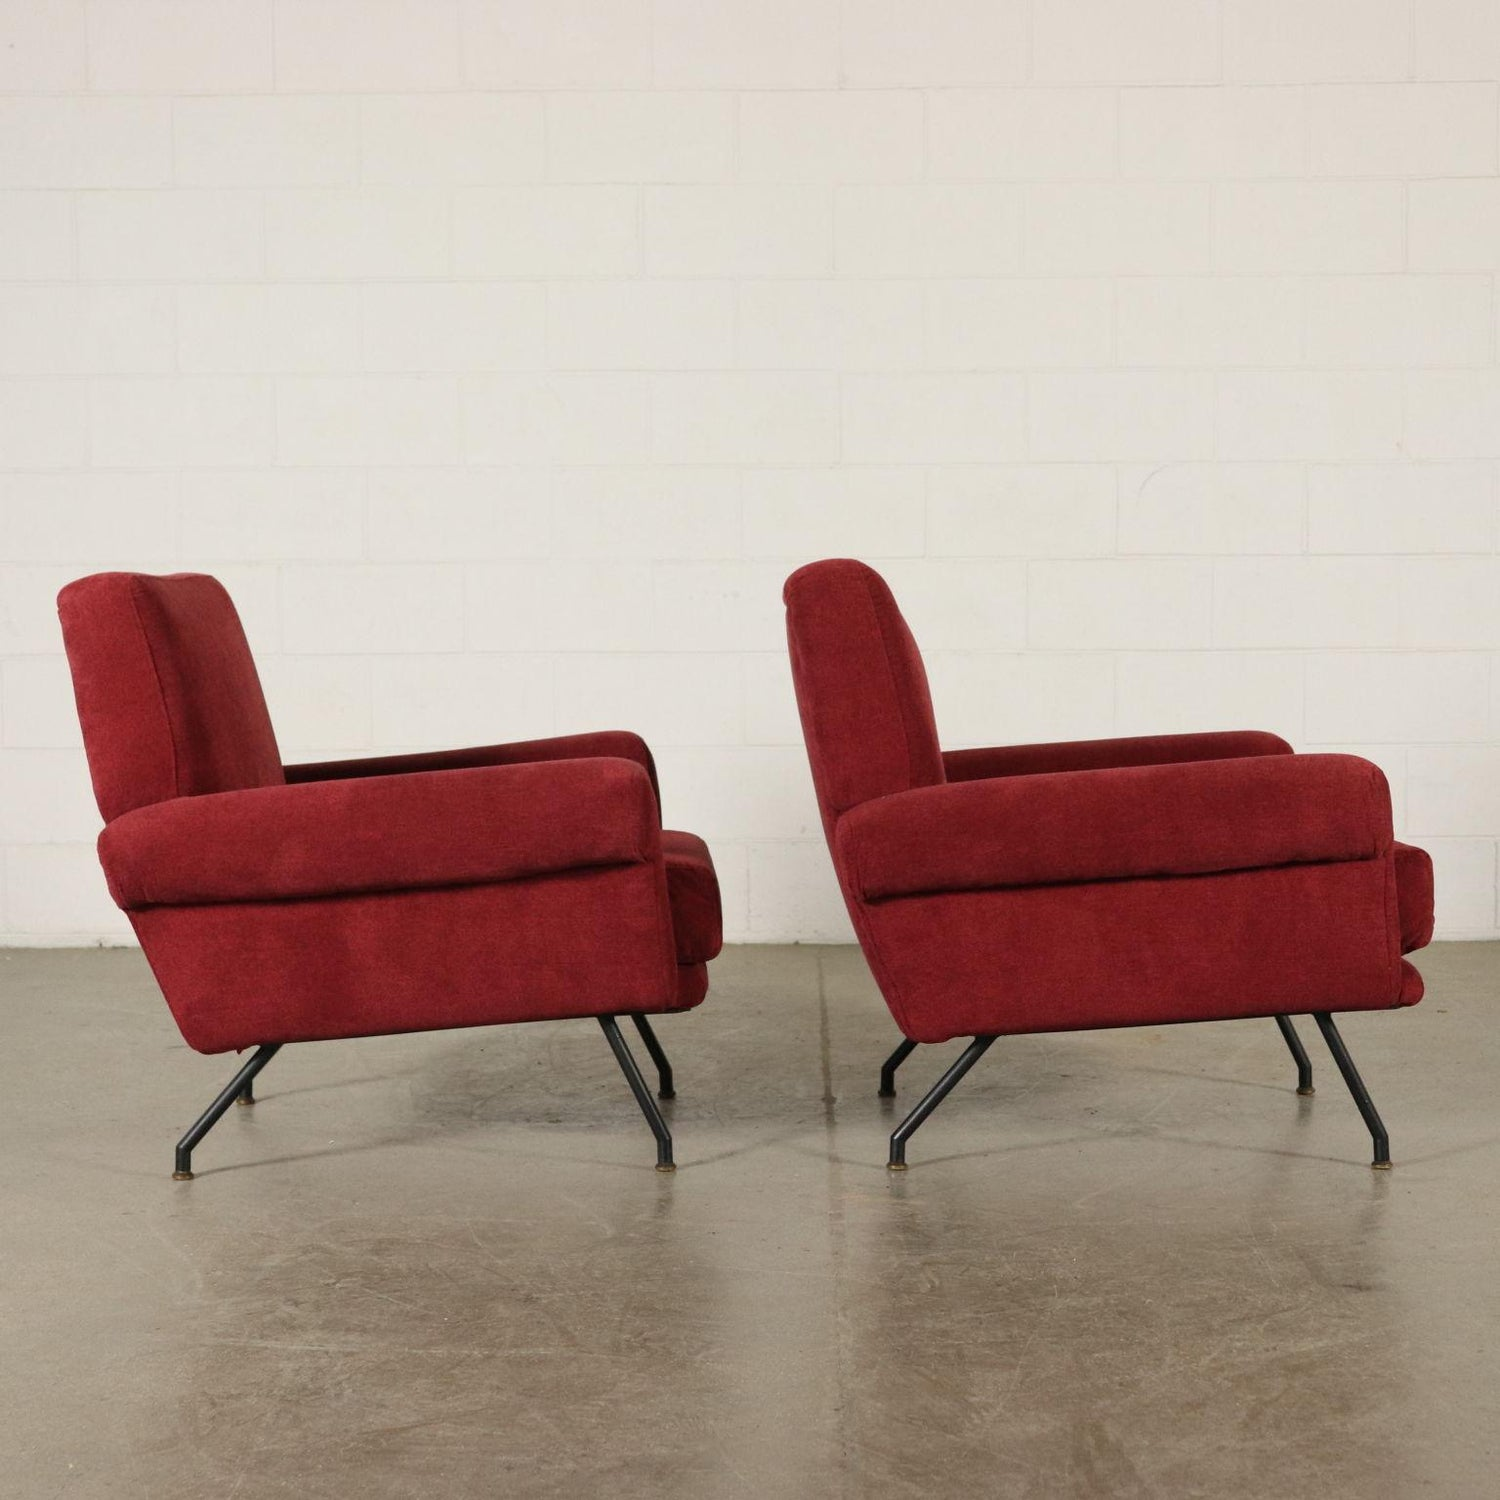 Pair of armchairs foam padding fabric vintage italy 1960s for sale at 1stdibs